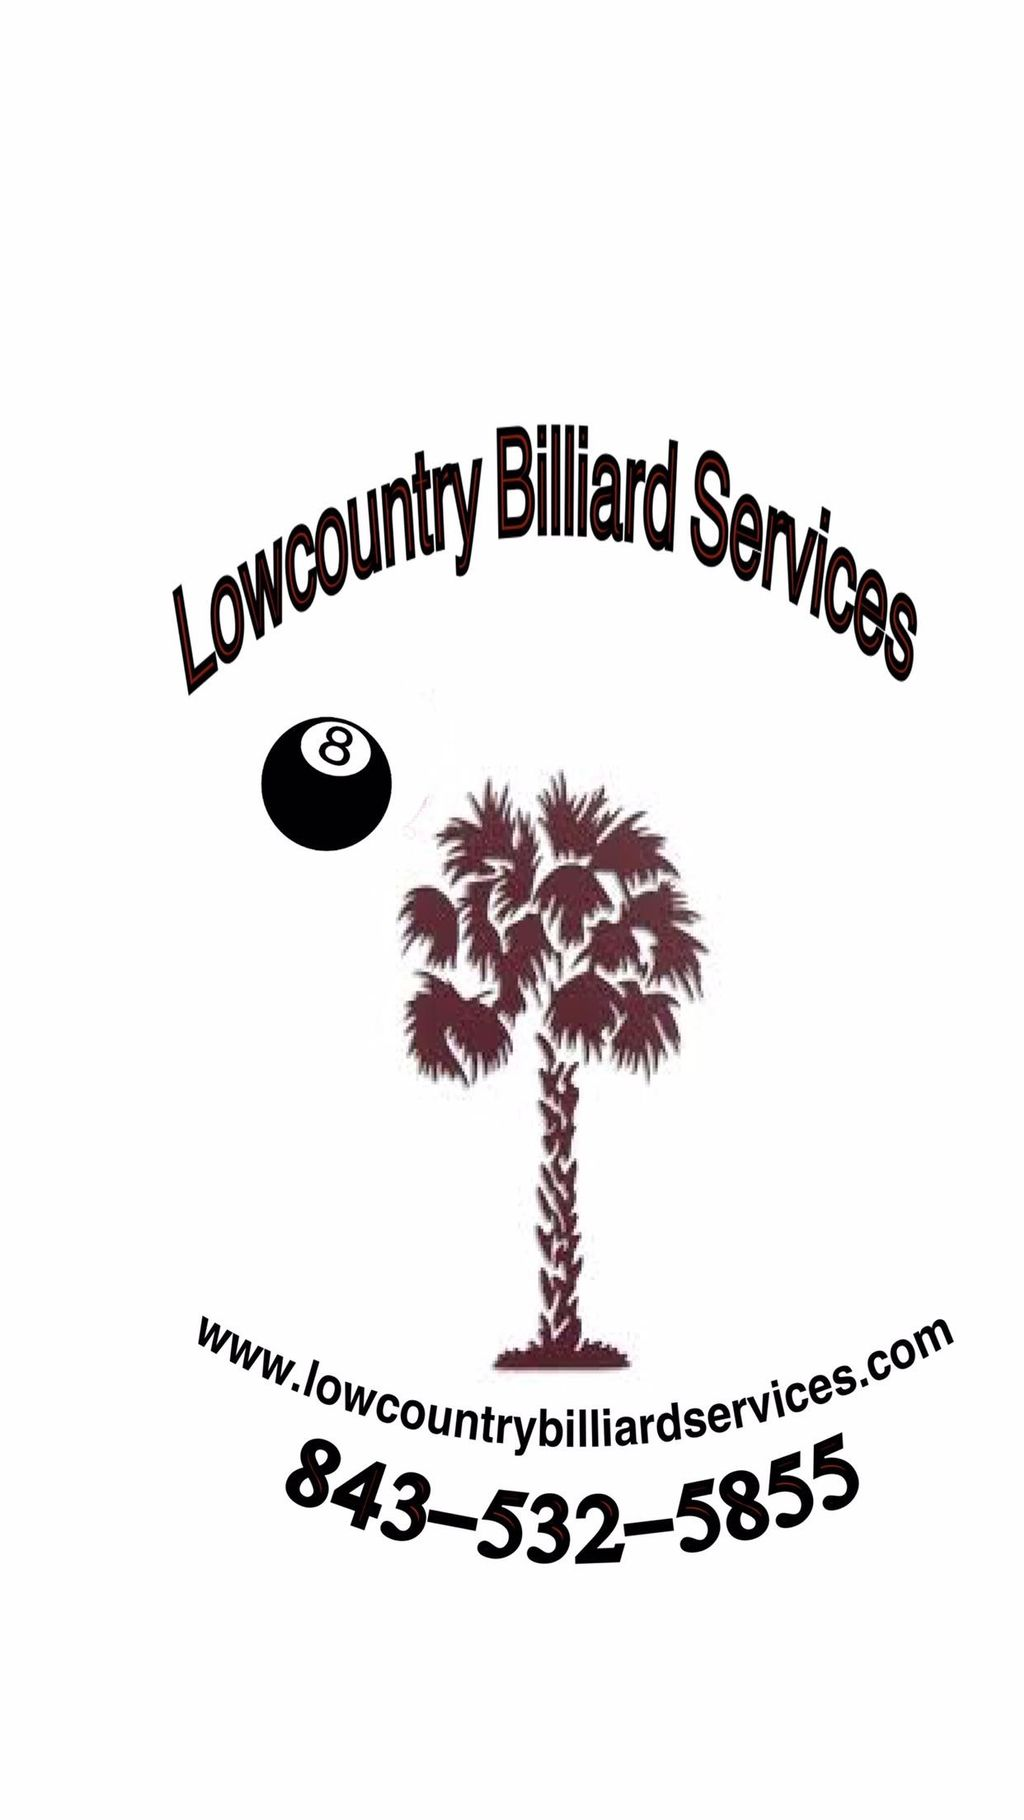 Lowcountry Billiard Services